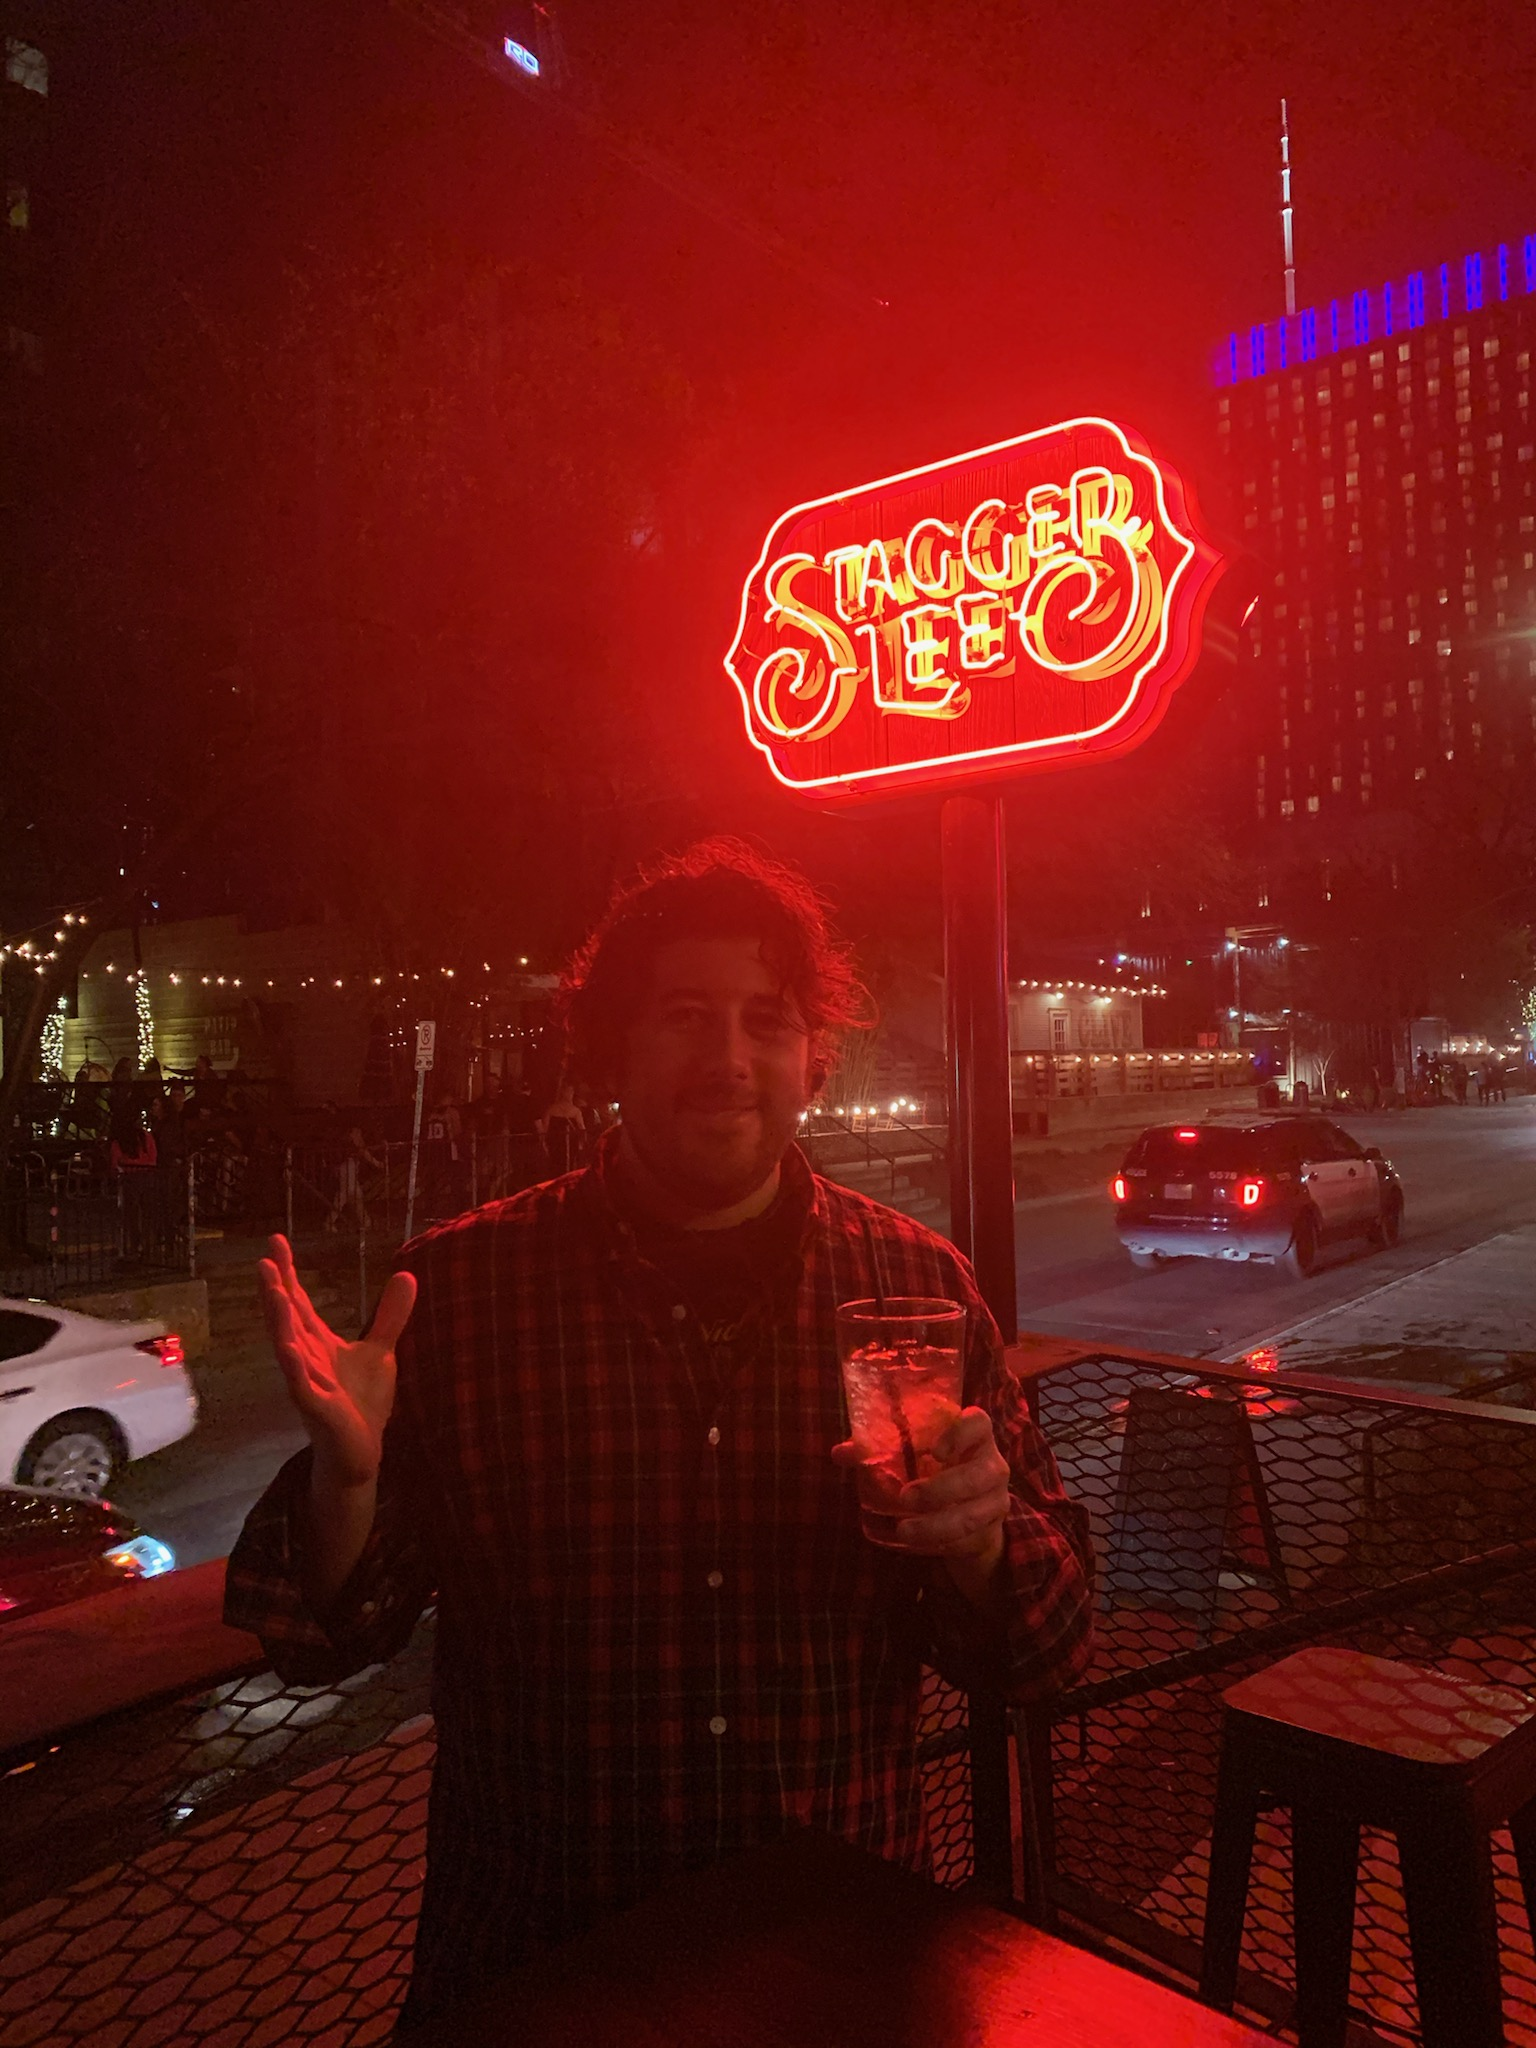 Lee shrugs at Stagger Lee in Austin, TX (Pre-Covid).